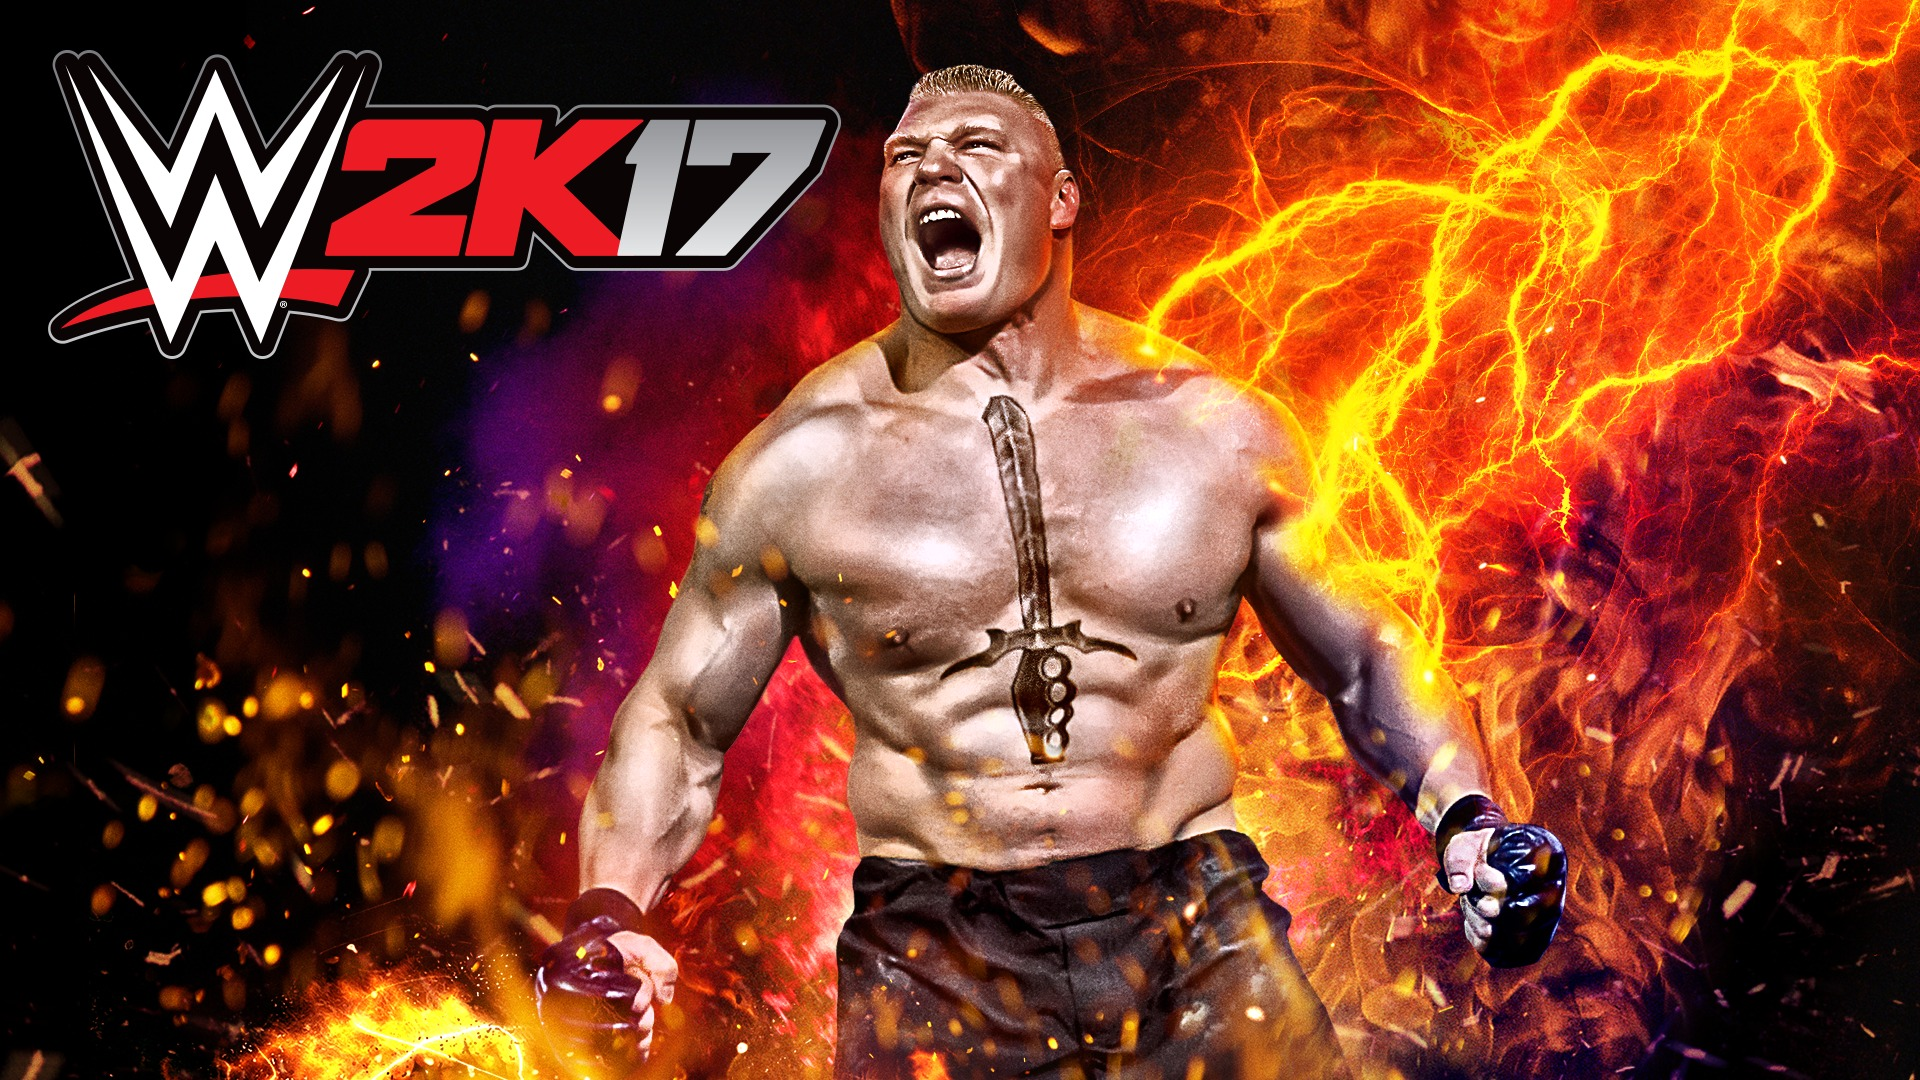 brock-lesnar-is-the-wwe-2k17-cover-star-reveal-trailer